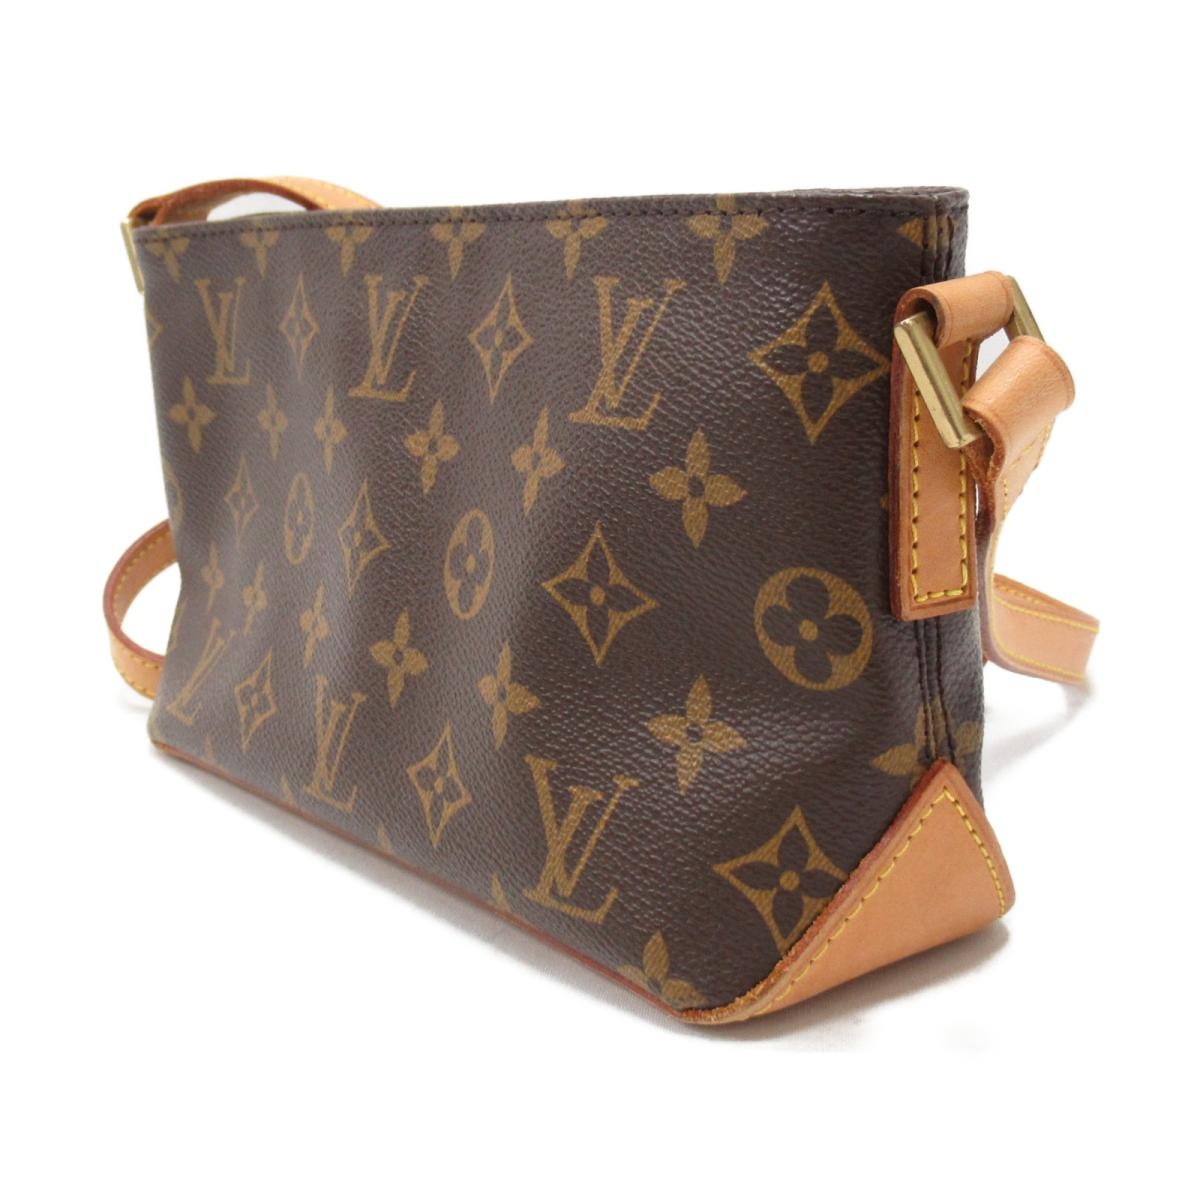 4ce82be0d8af (Free shipping) Auth LOUIS VUITTON Trotteur Crossbody Shoulder Bag M51240  Monogram Used LV